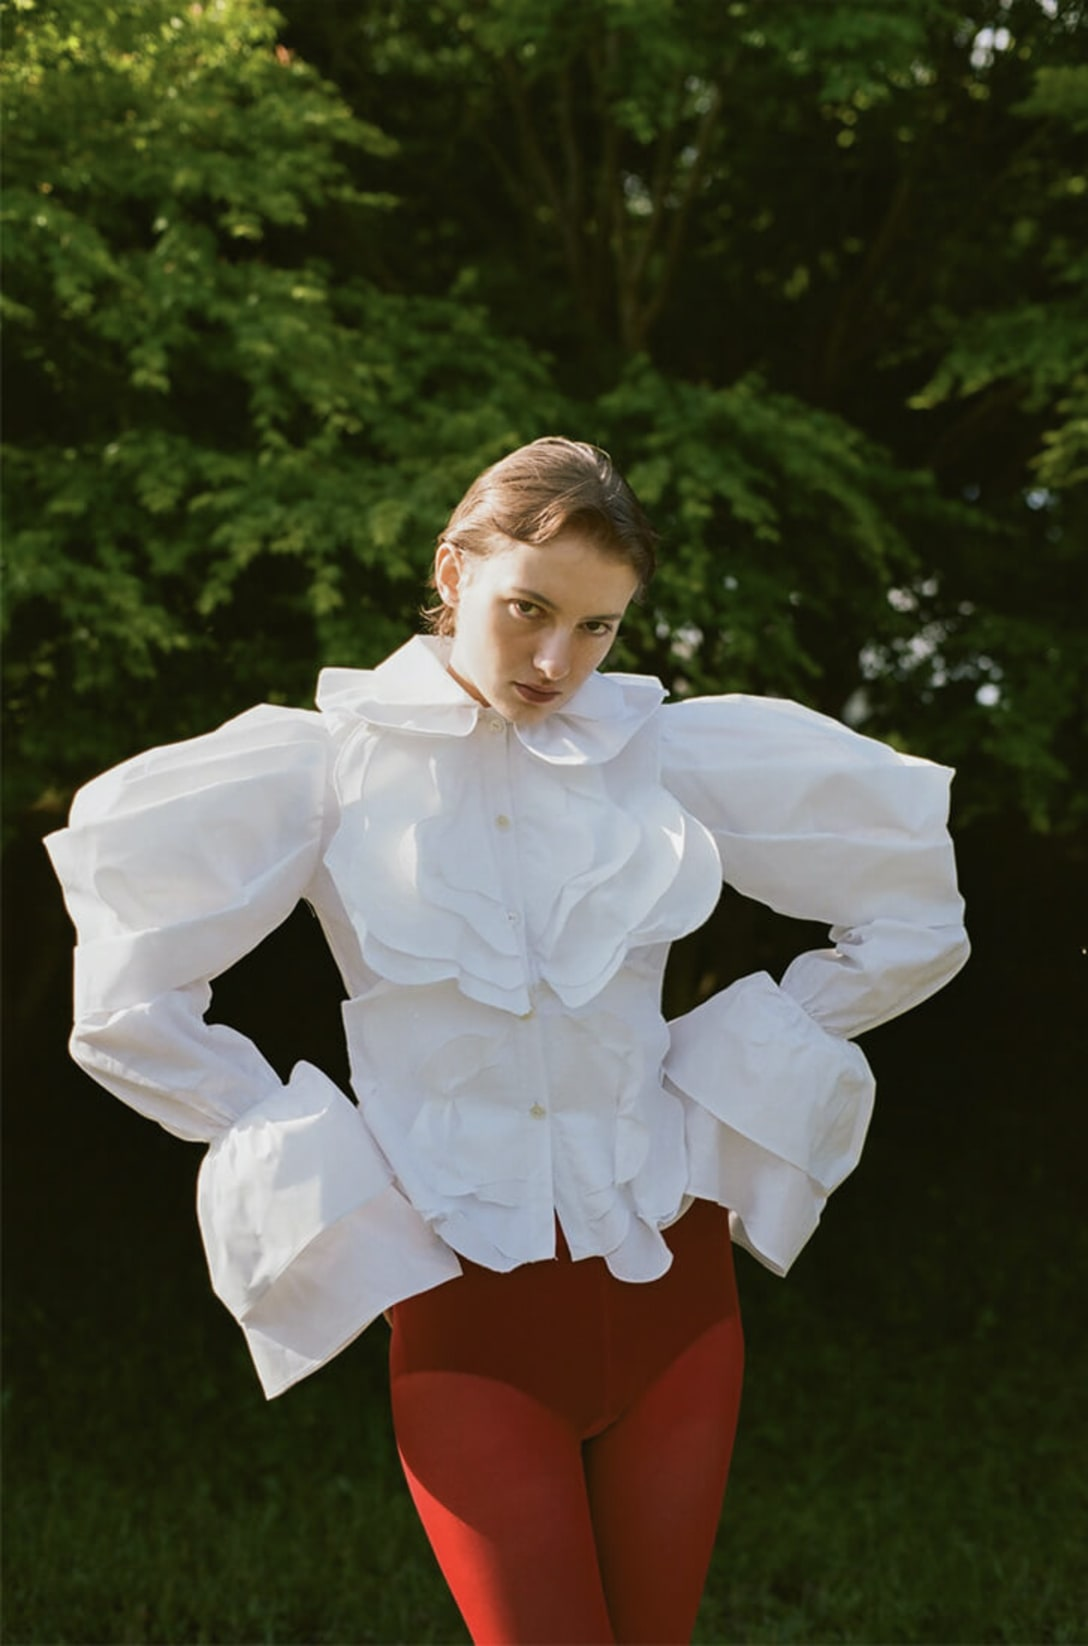 blouse by KOHARU HAGIWARA, shorts and tights stylist's own